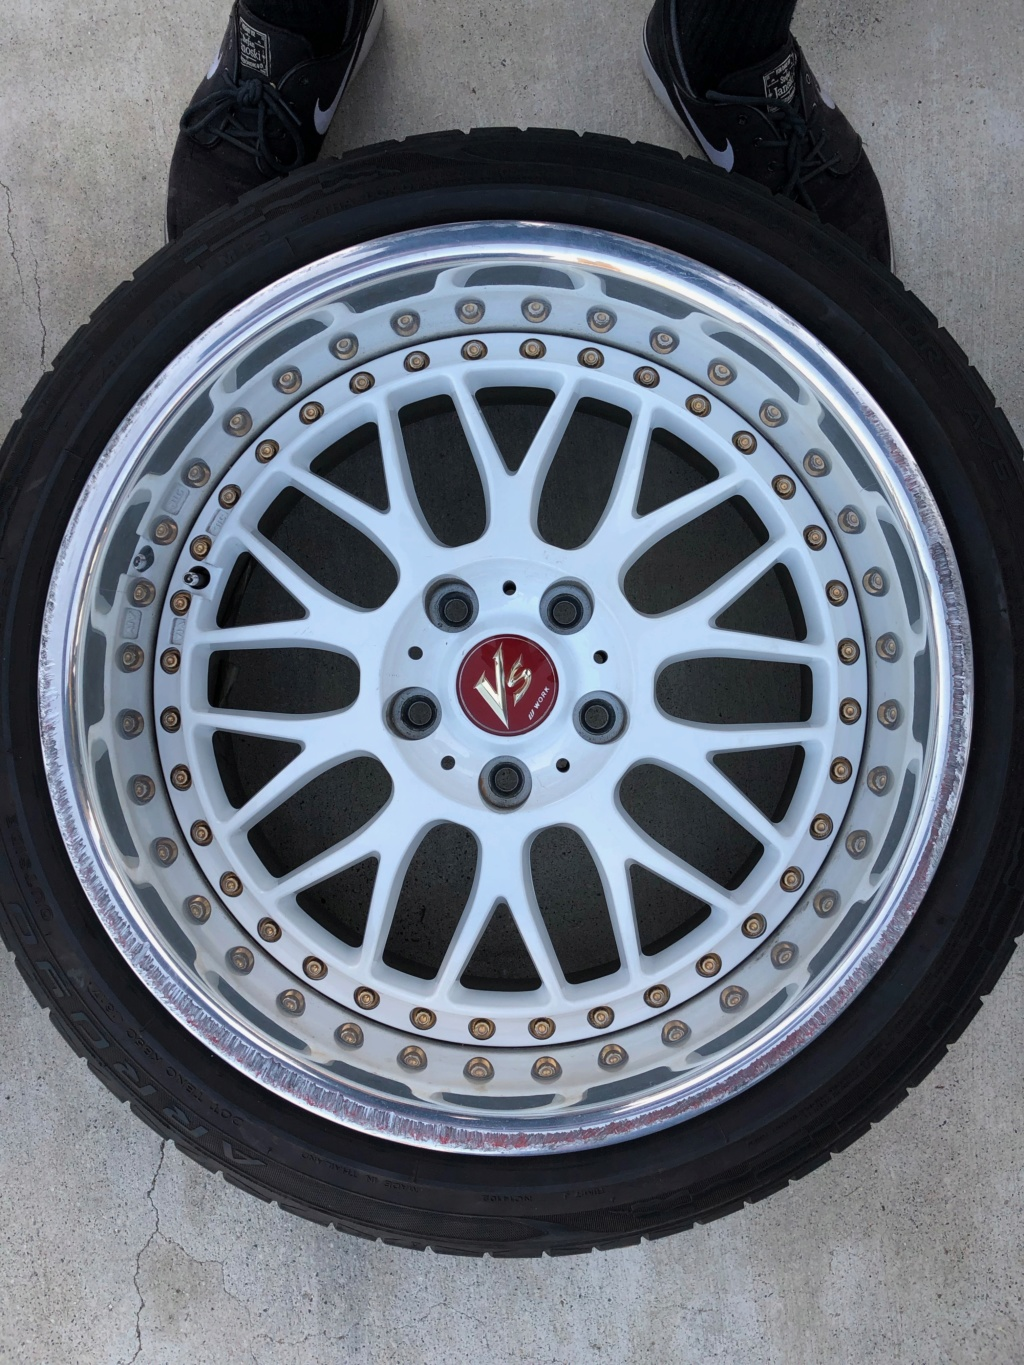 Wheels For Sale: 17x9.5 +10 Work VSXX - $2000 OBO - Los Angeles, CA Img_0211